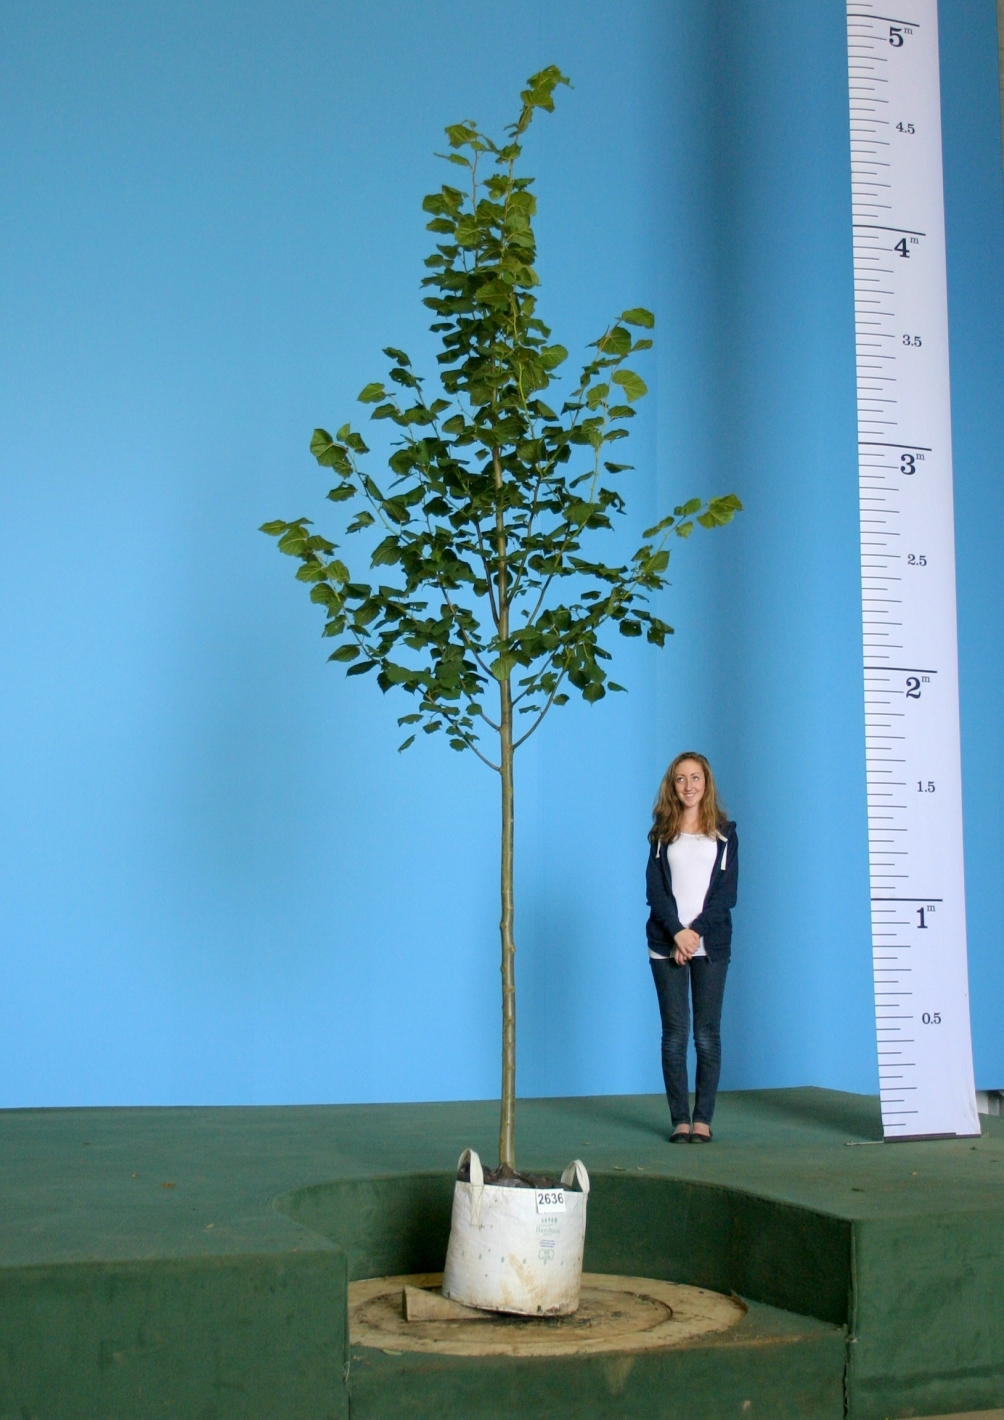 Mature Tilia platyphyllos planted in parkland Scaled image of Tilia platyphyllos size Medium